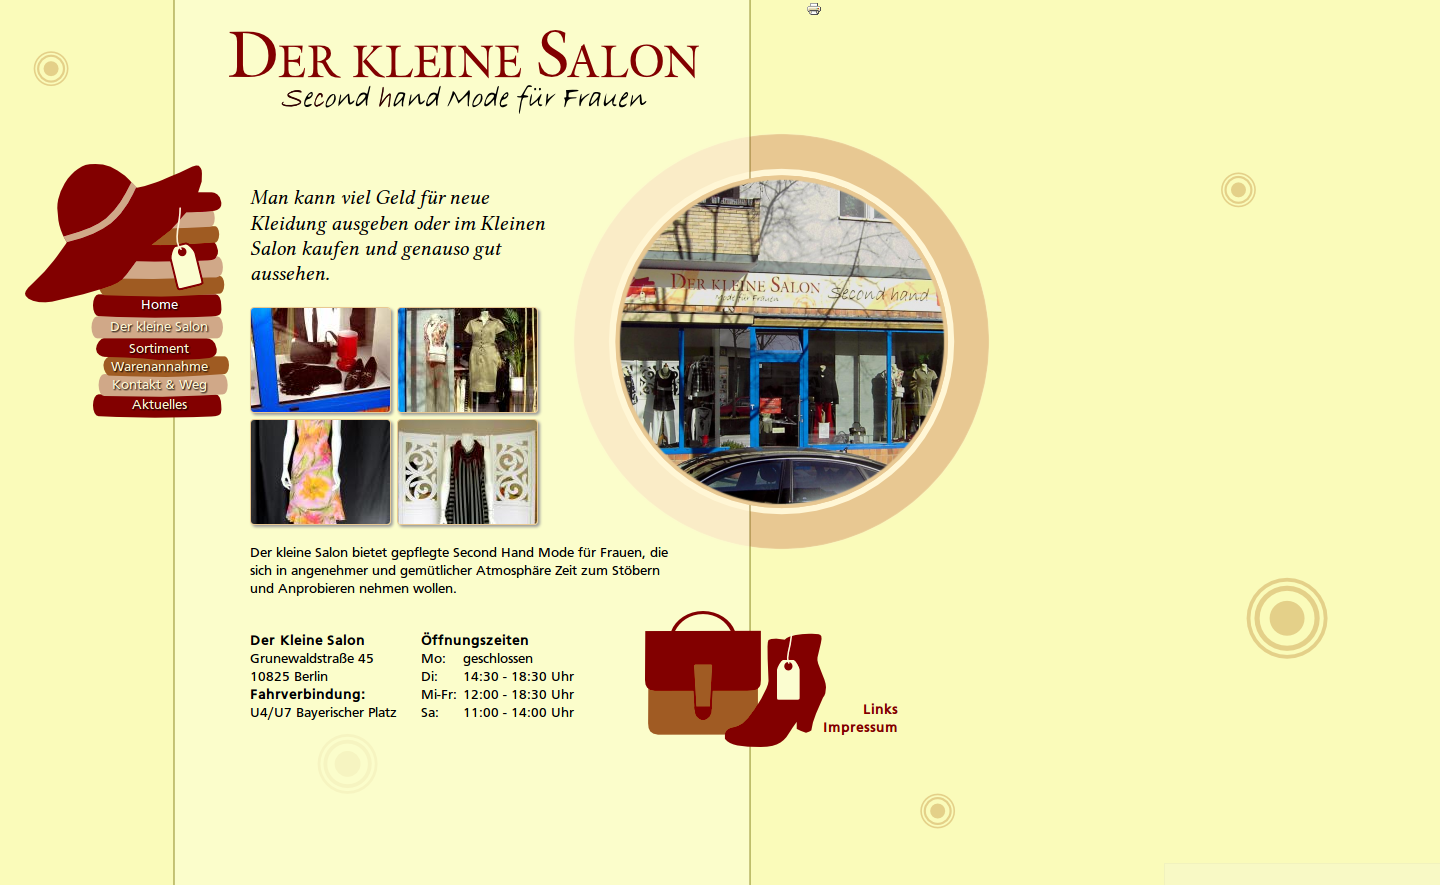 Der kleine Salon: Website - Start